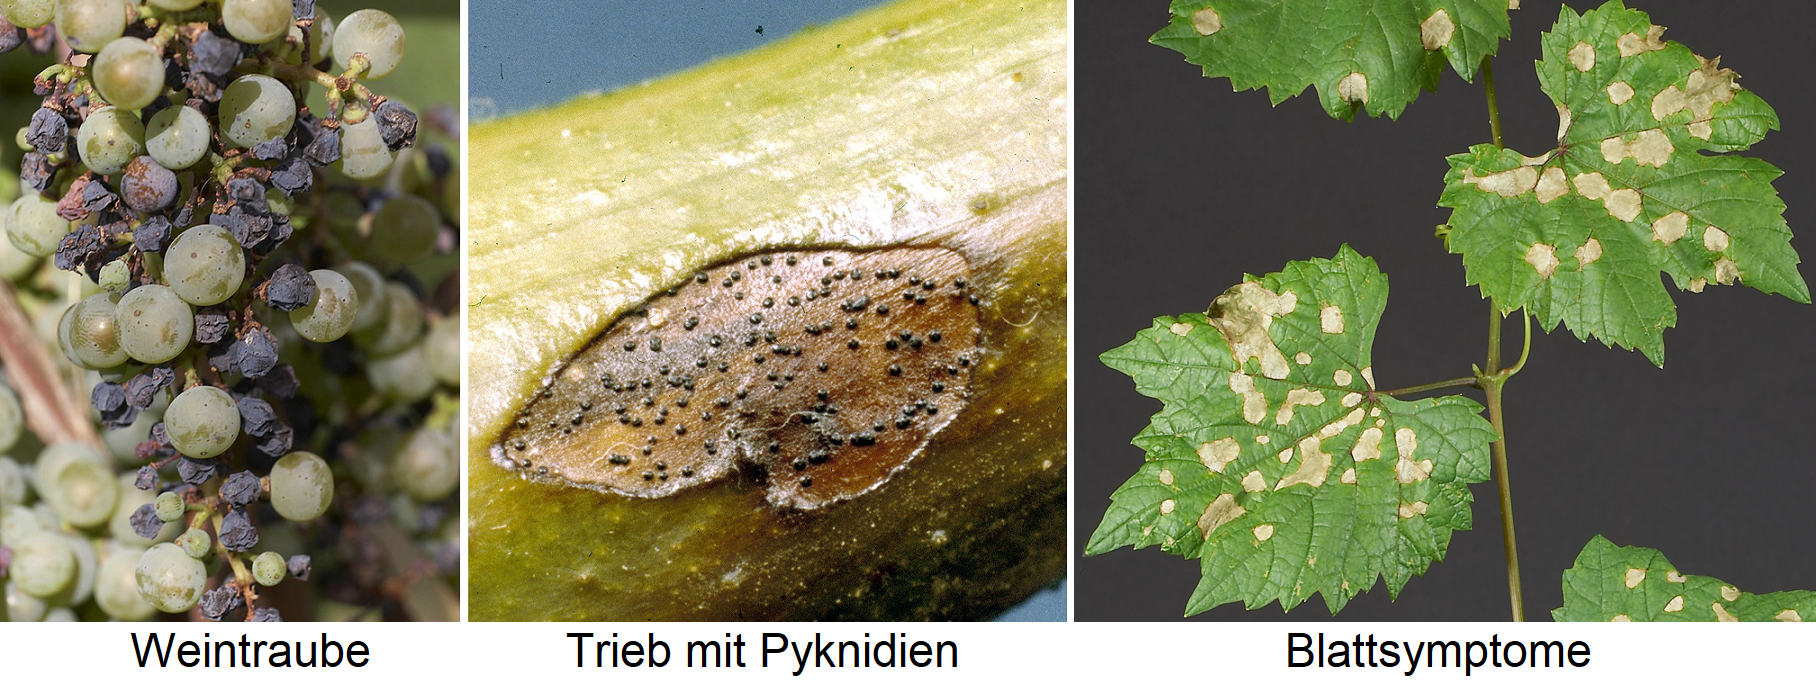 Schwarfäule - infested grape, shoot with pycnidia and leaf symptoms